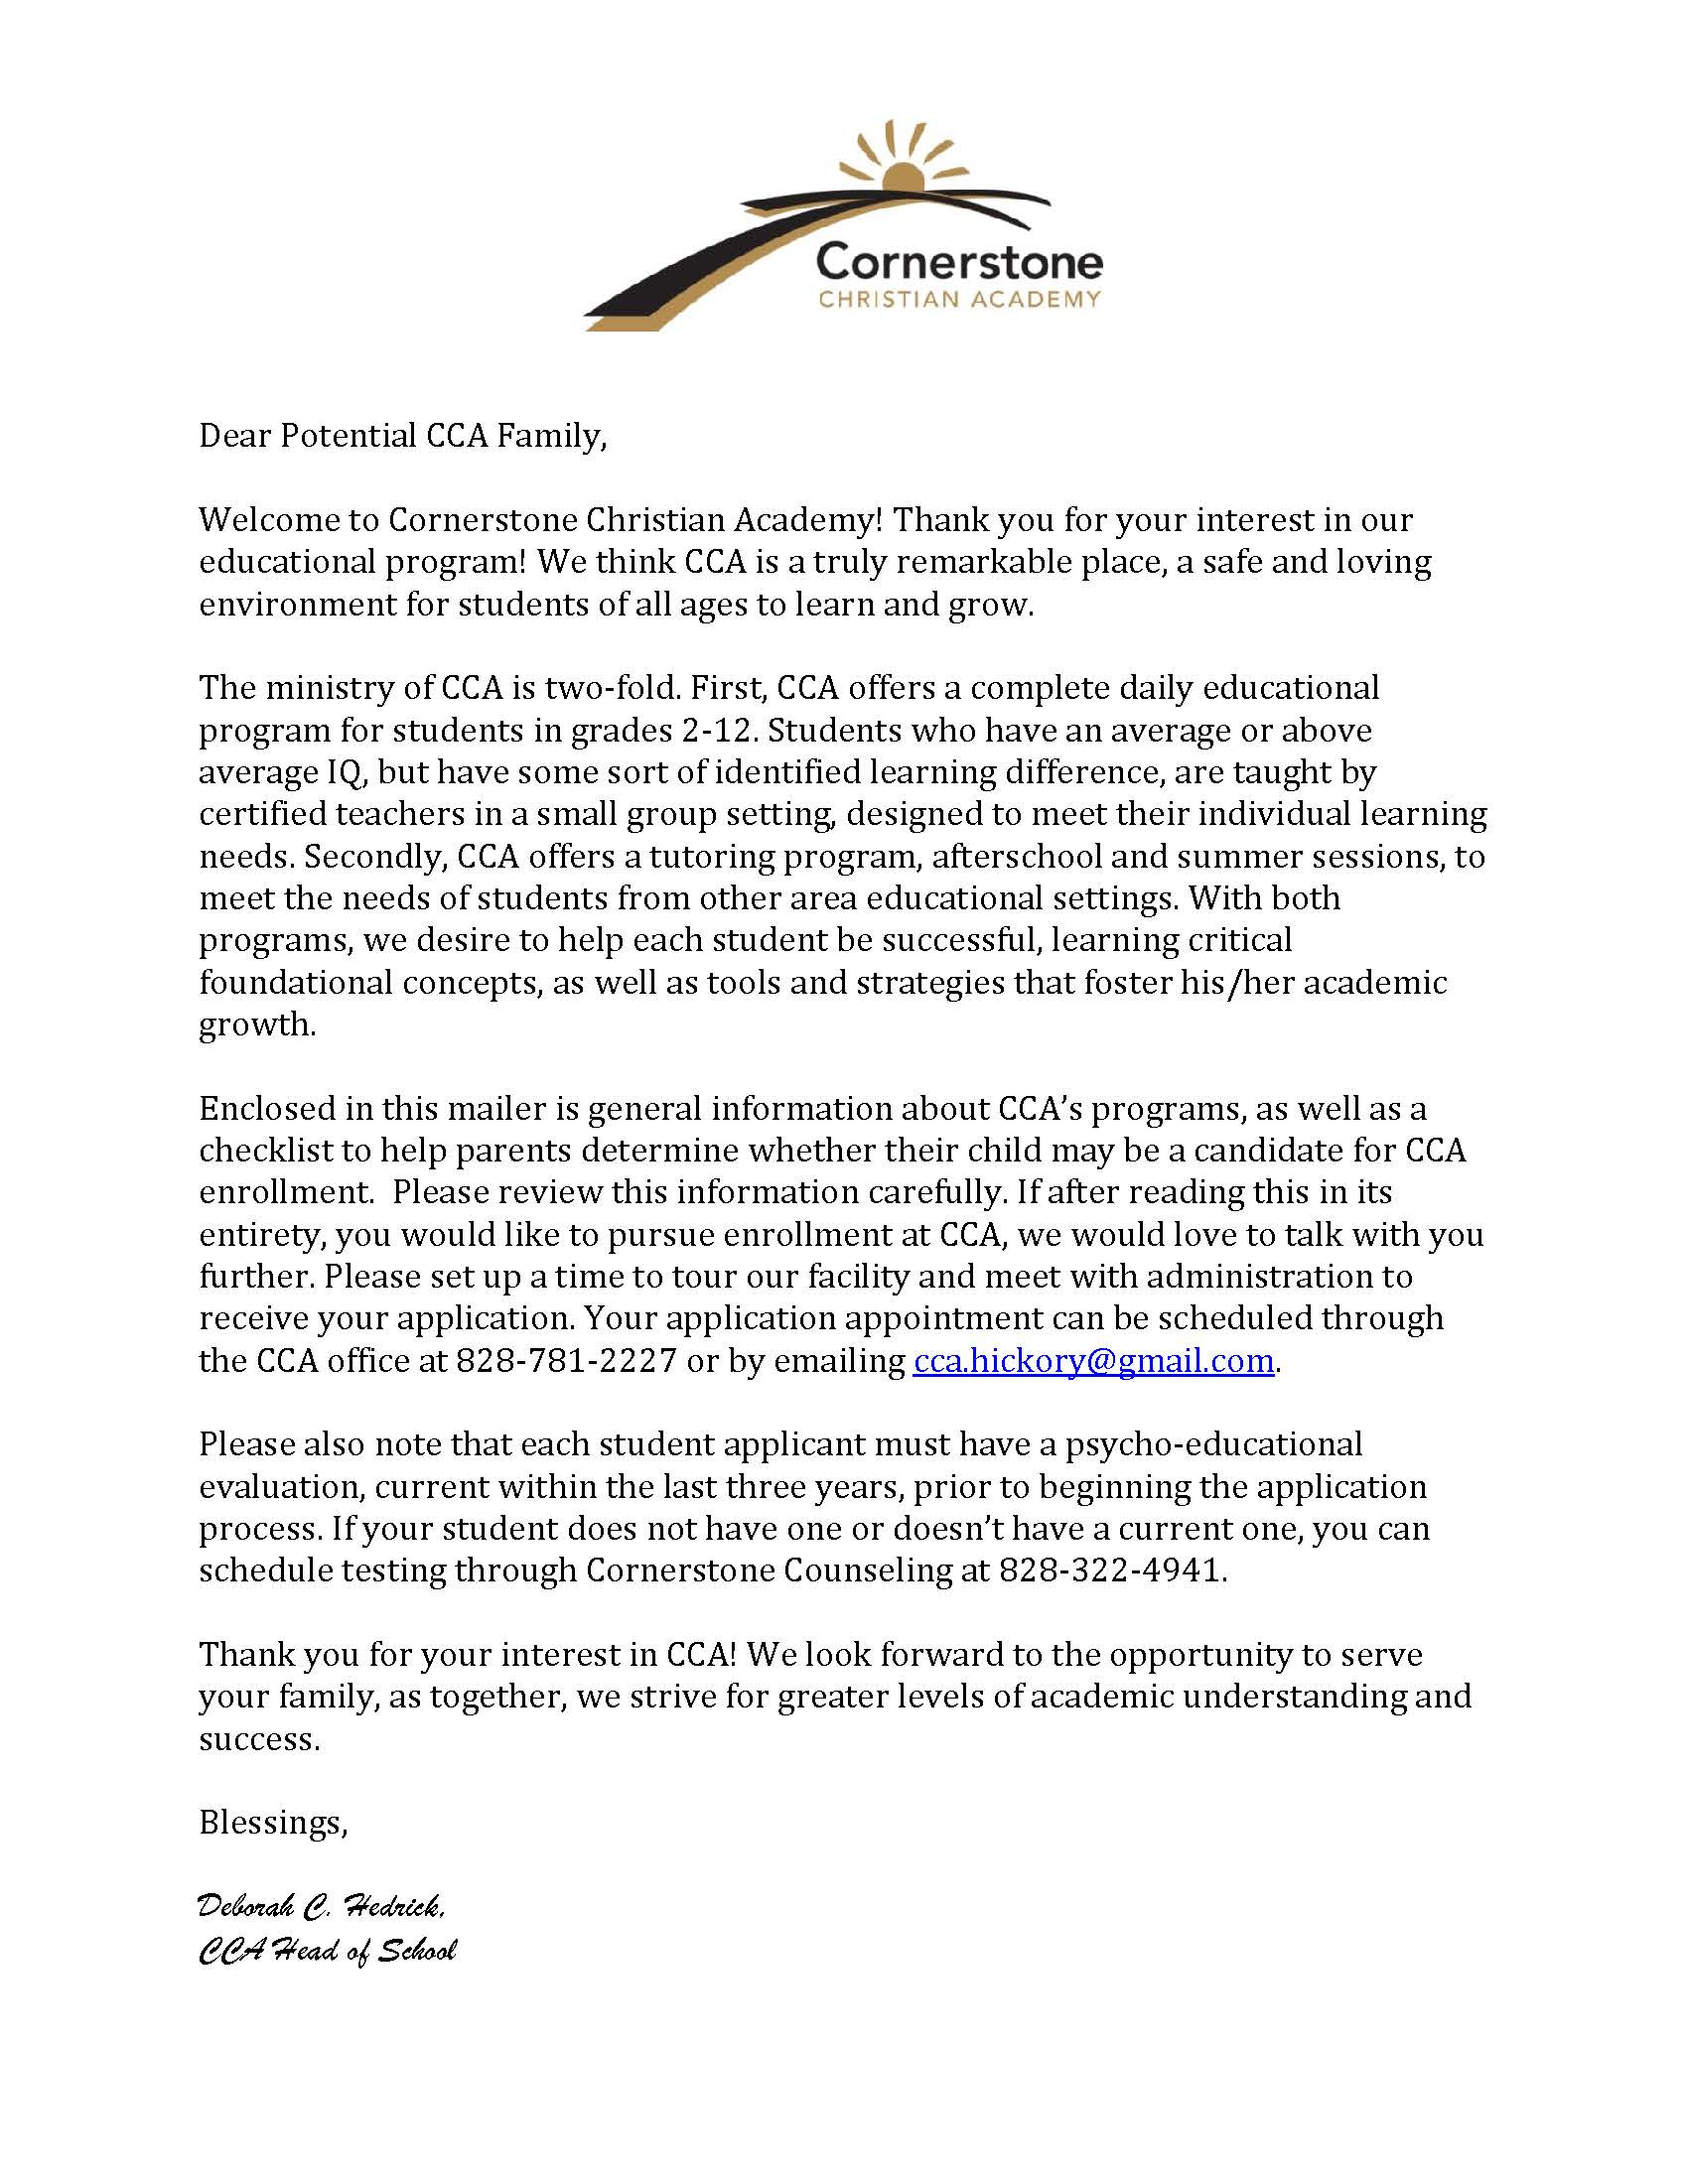 Thank you for loving me letter thank you for loving me letter click here for 2018 19 new enrollment letter from cca head of school expocarfo Image collections